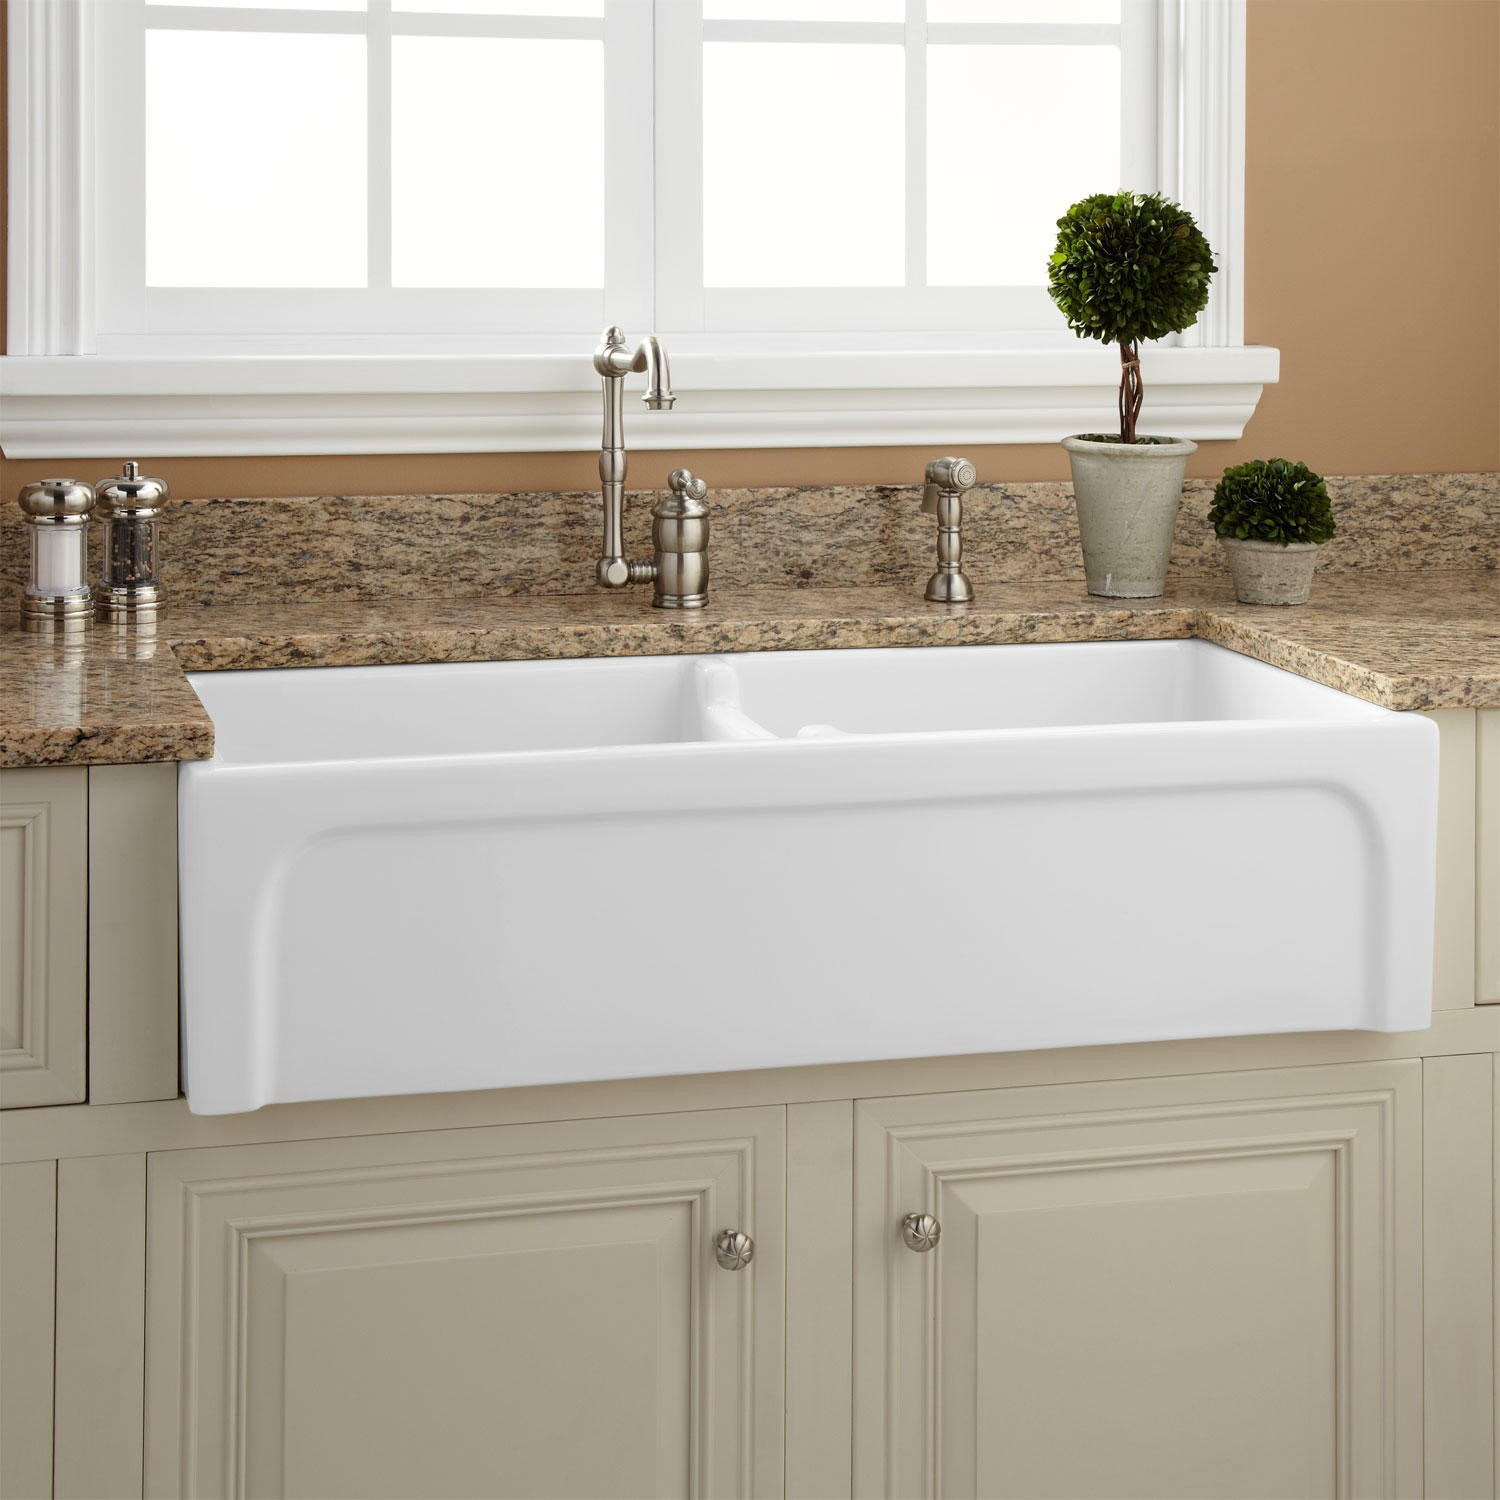 rectangle white apron sink plus silver faucet on white kitchen cabinet with marble countertop under the white window plus white ceramics floor for kitchen decor ideas